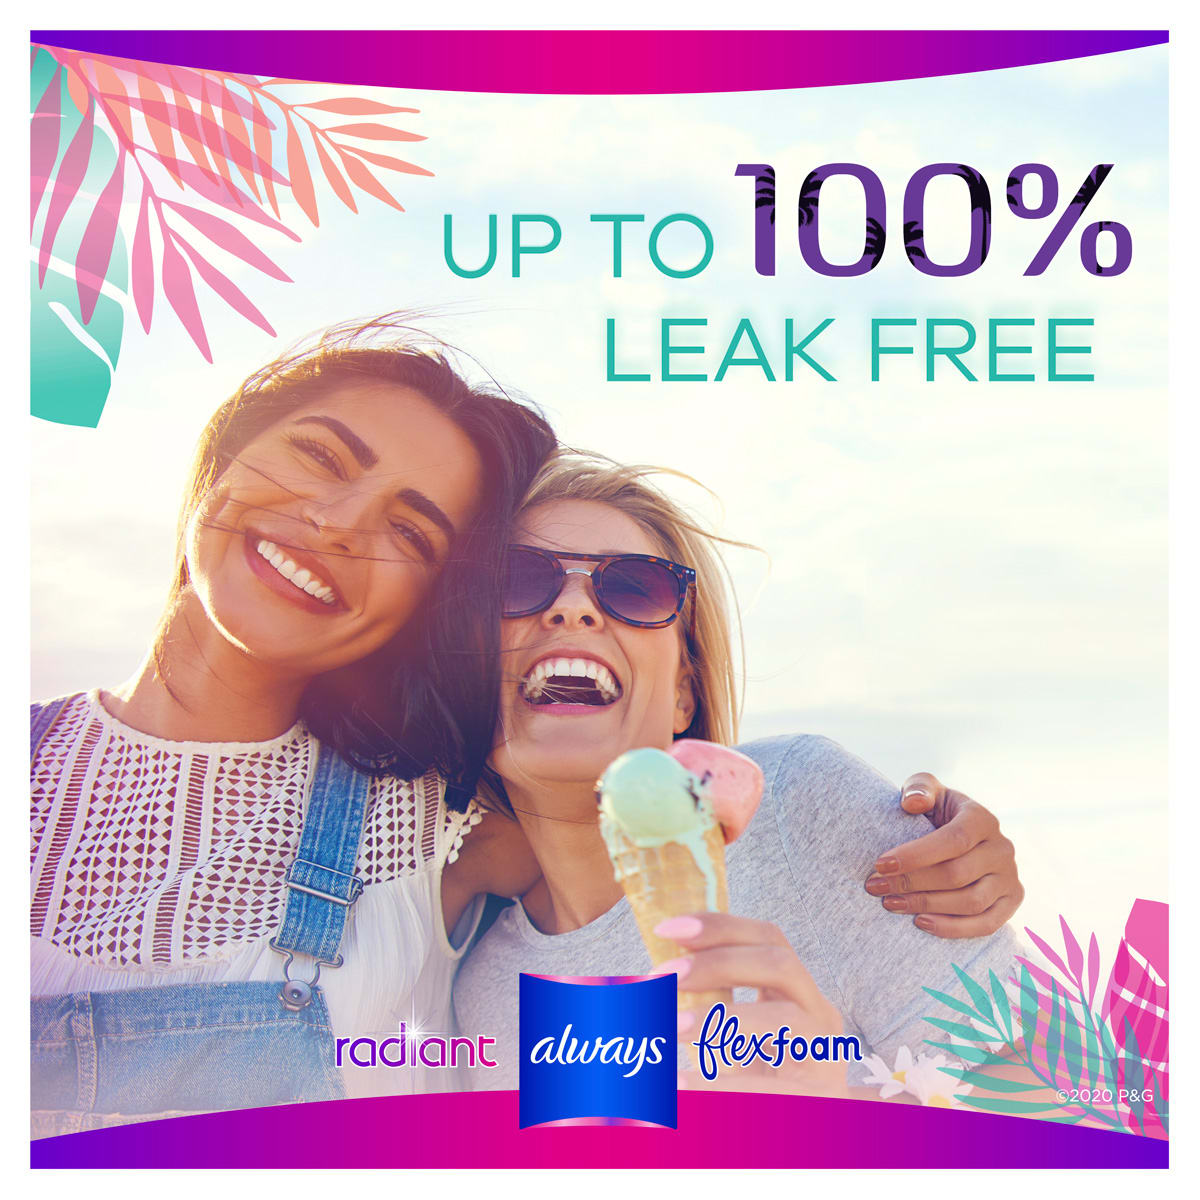 Up to 100% leak free